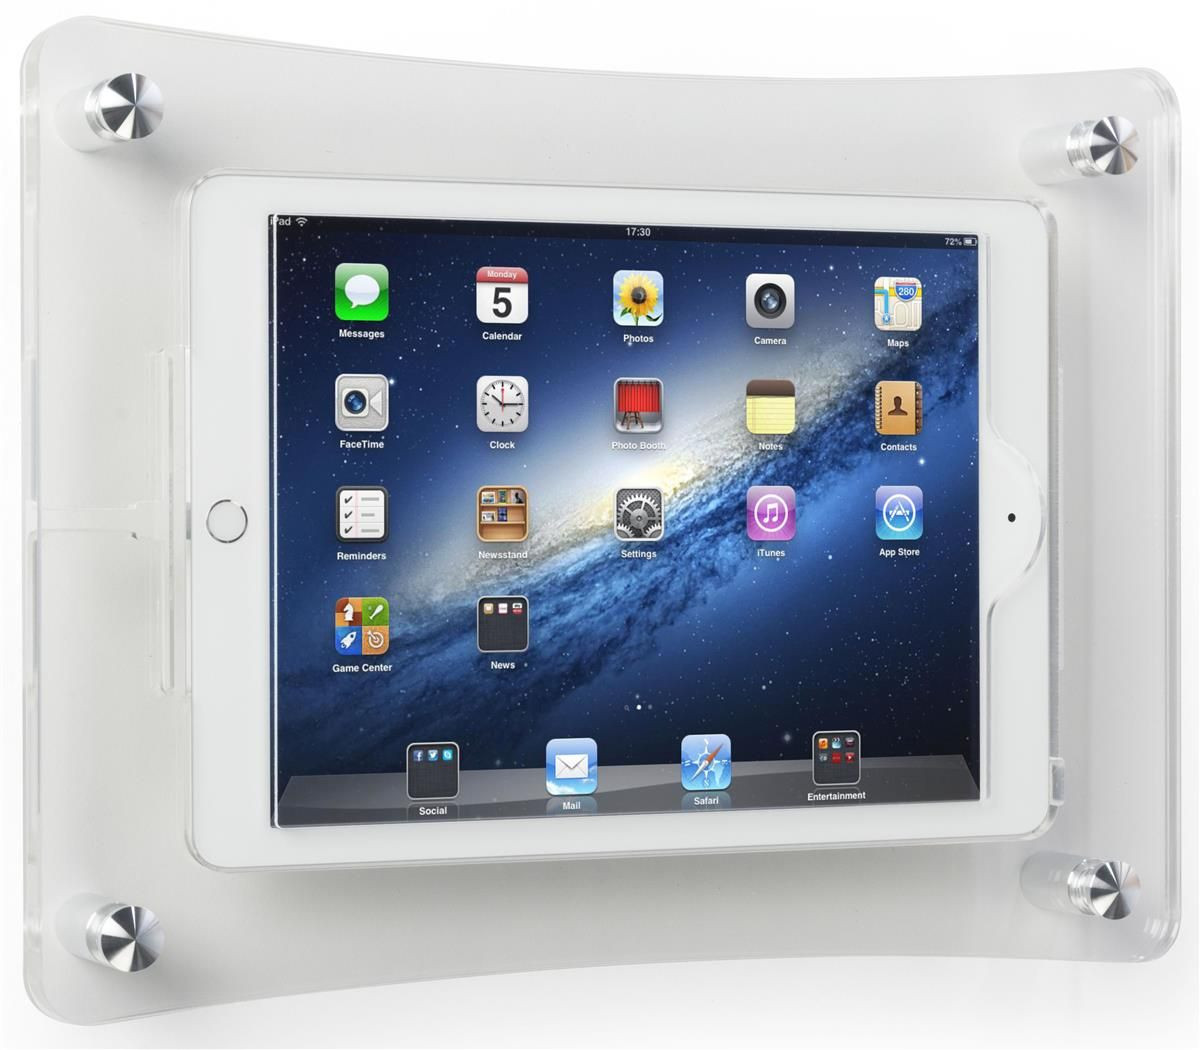 Ipad Air Wall Mount With Clear Acrylic Enclosure Optional Home Button Cover Ipad Wall Mount Ipad Best Home Security